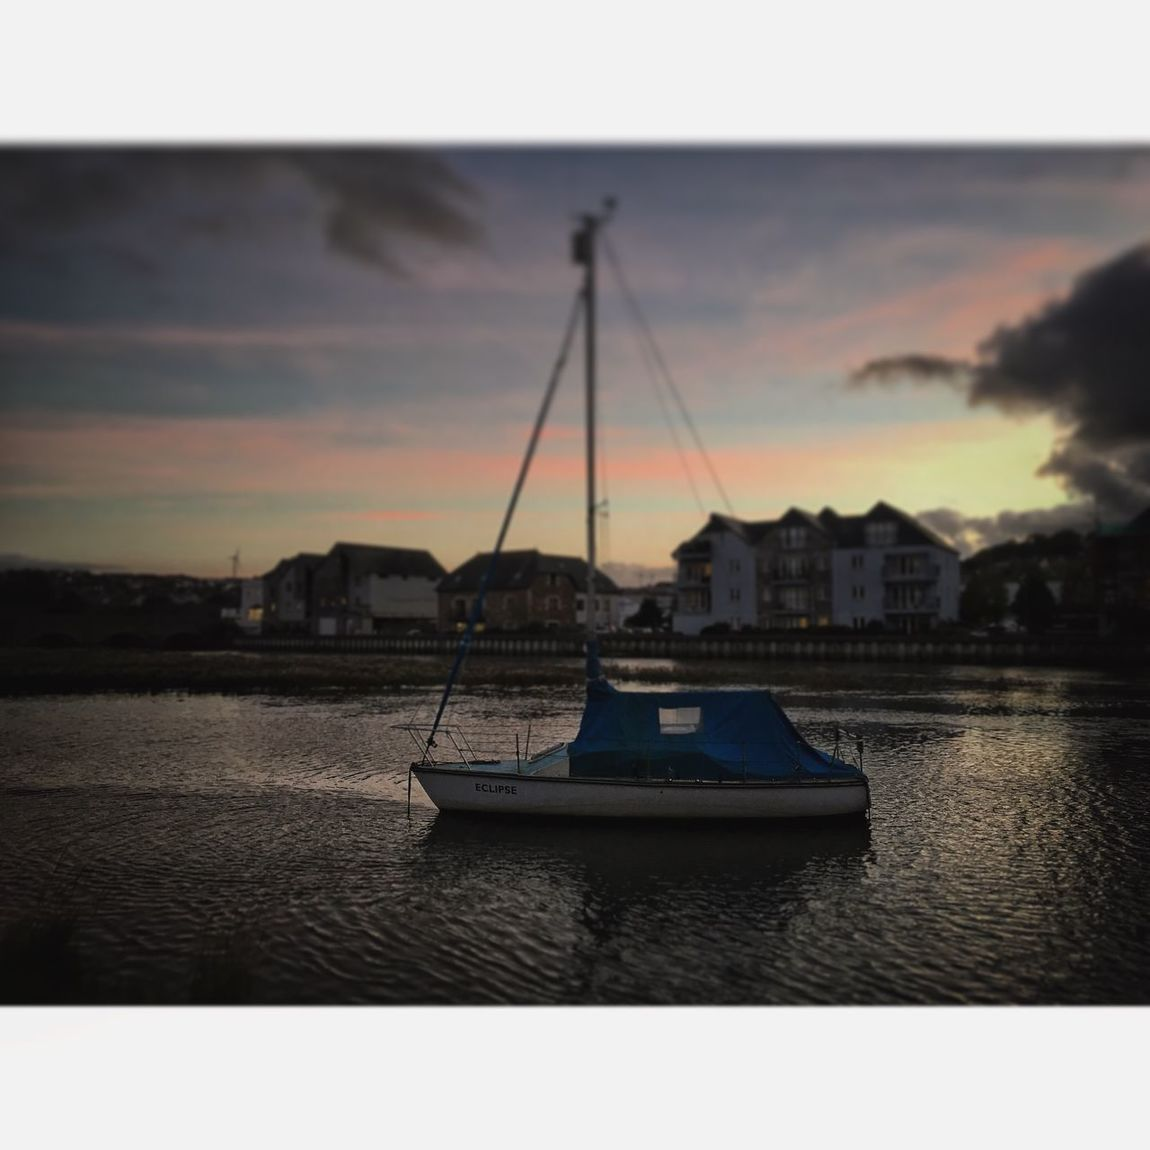 Nautical Vessel Water Transportation Mode Of Transport Architecture Sky Built Structure Sea Harbor City Building Exterior No People Outdoors Sunset Wadebridge Cornwall Beautiful Yacht Day Sailboat Nature